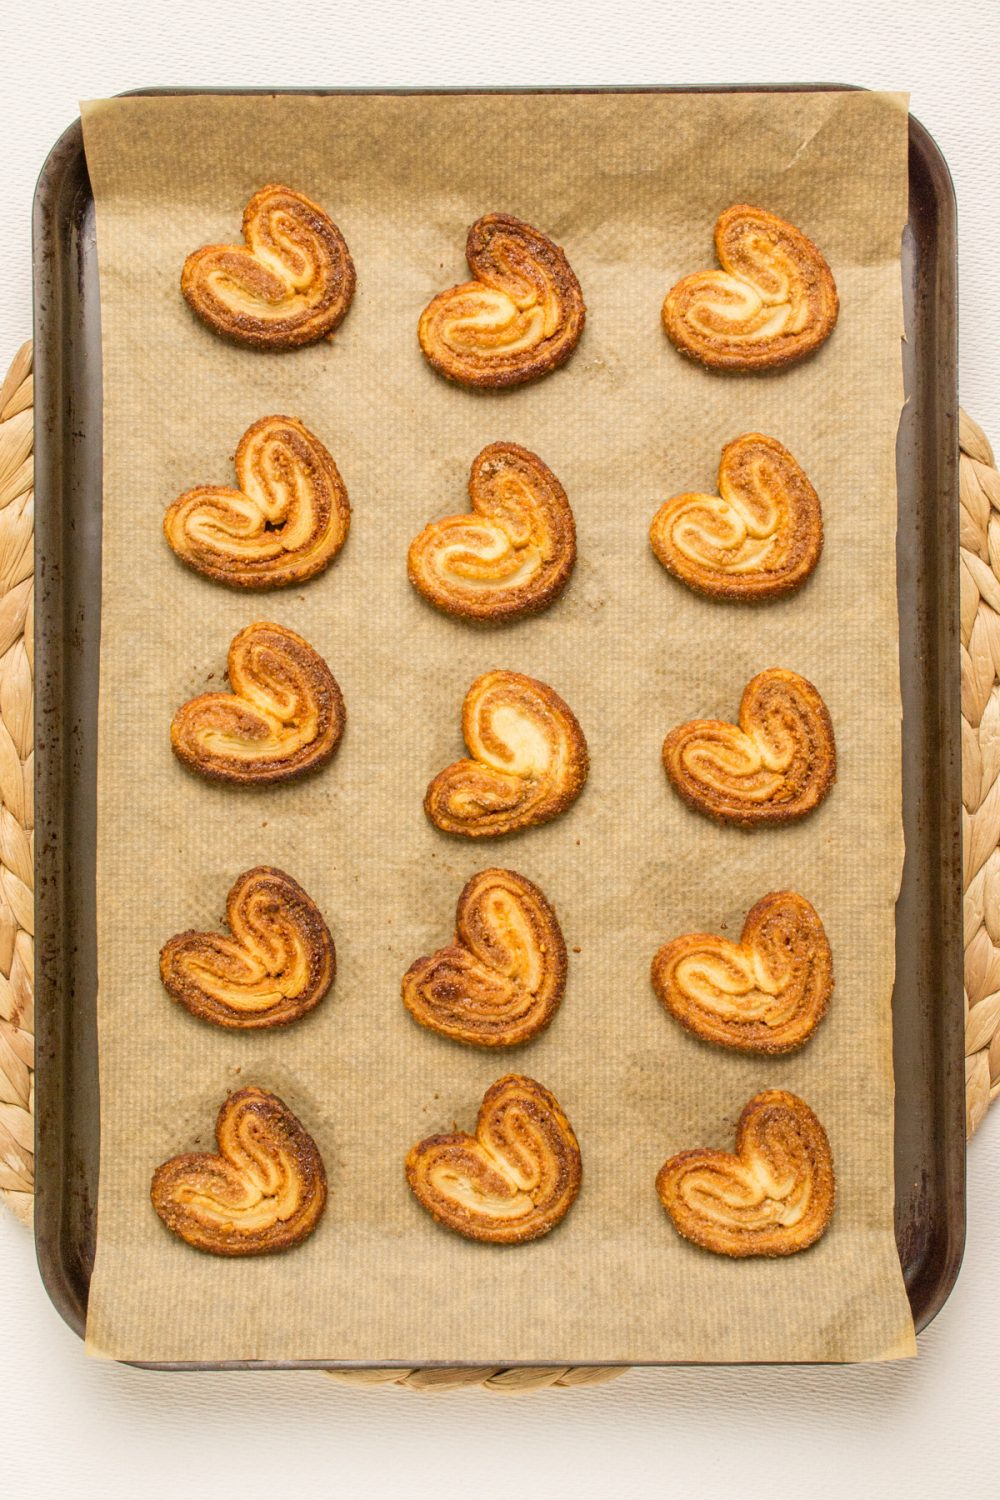 Fifteen baked cookies on a lined baking tray.